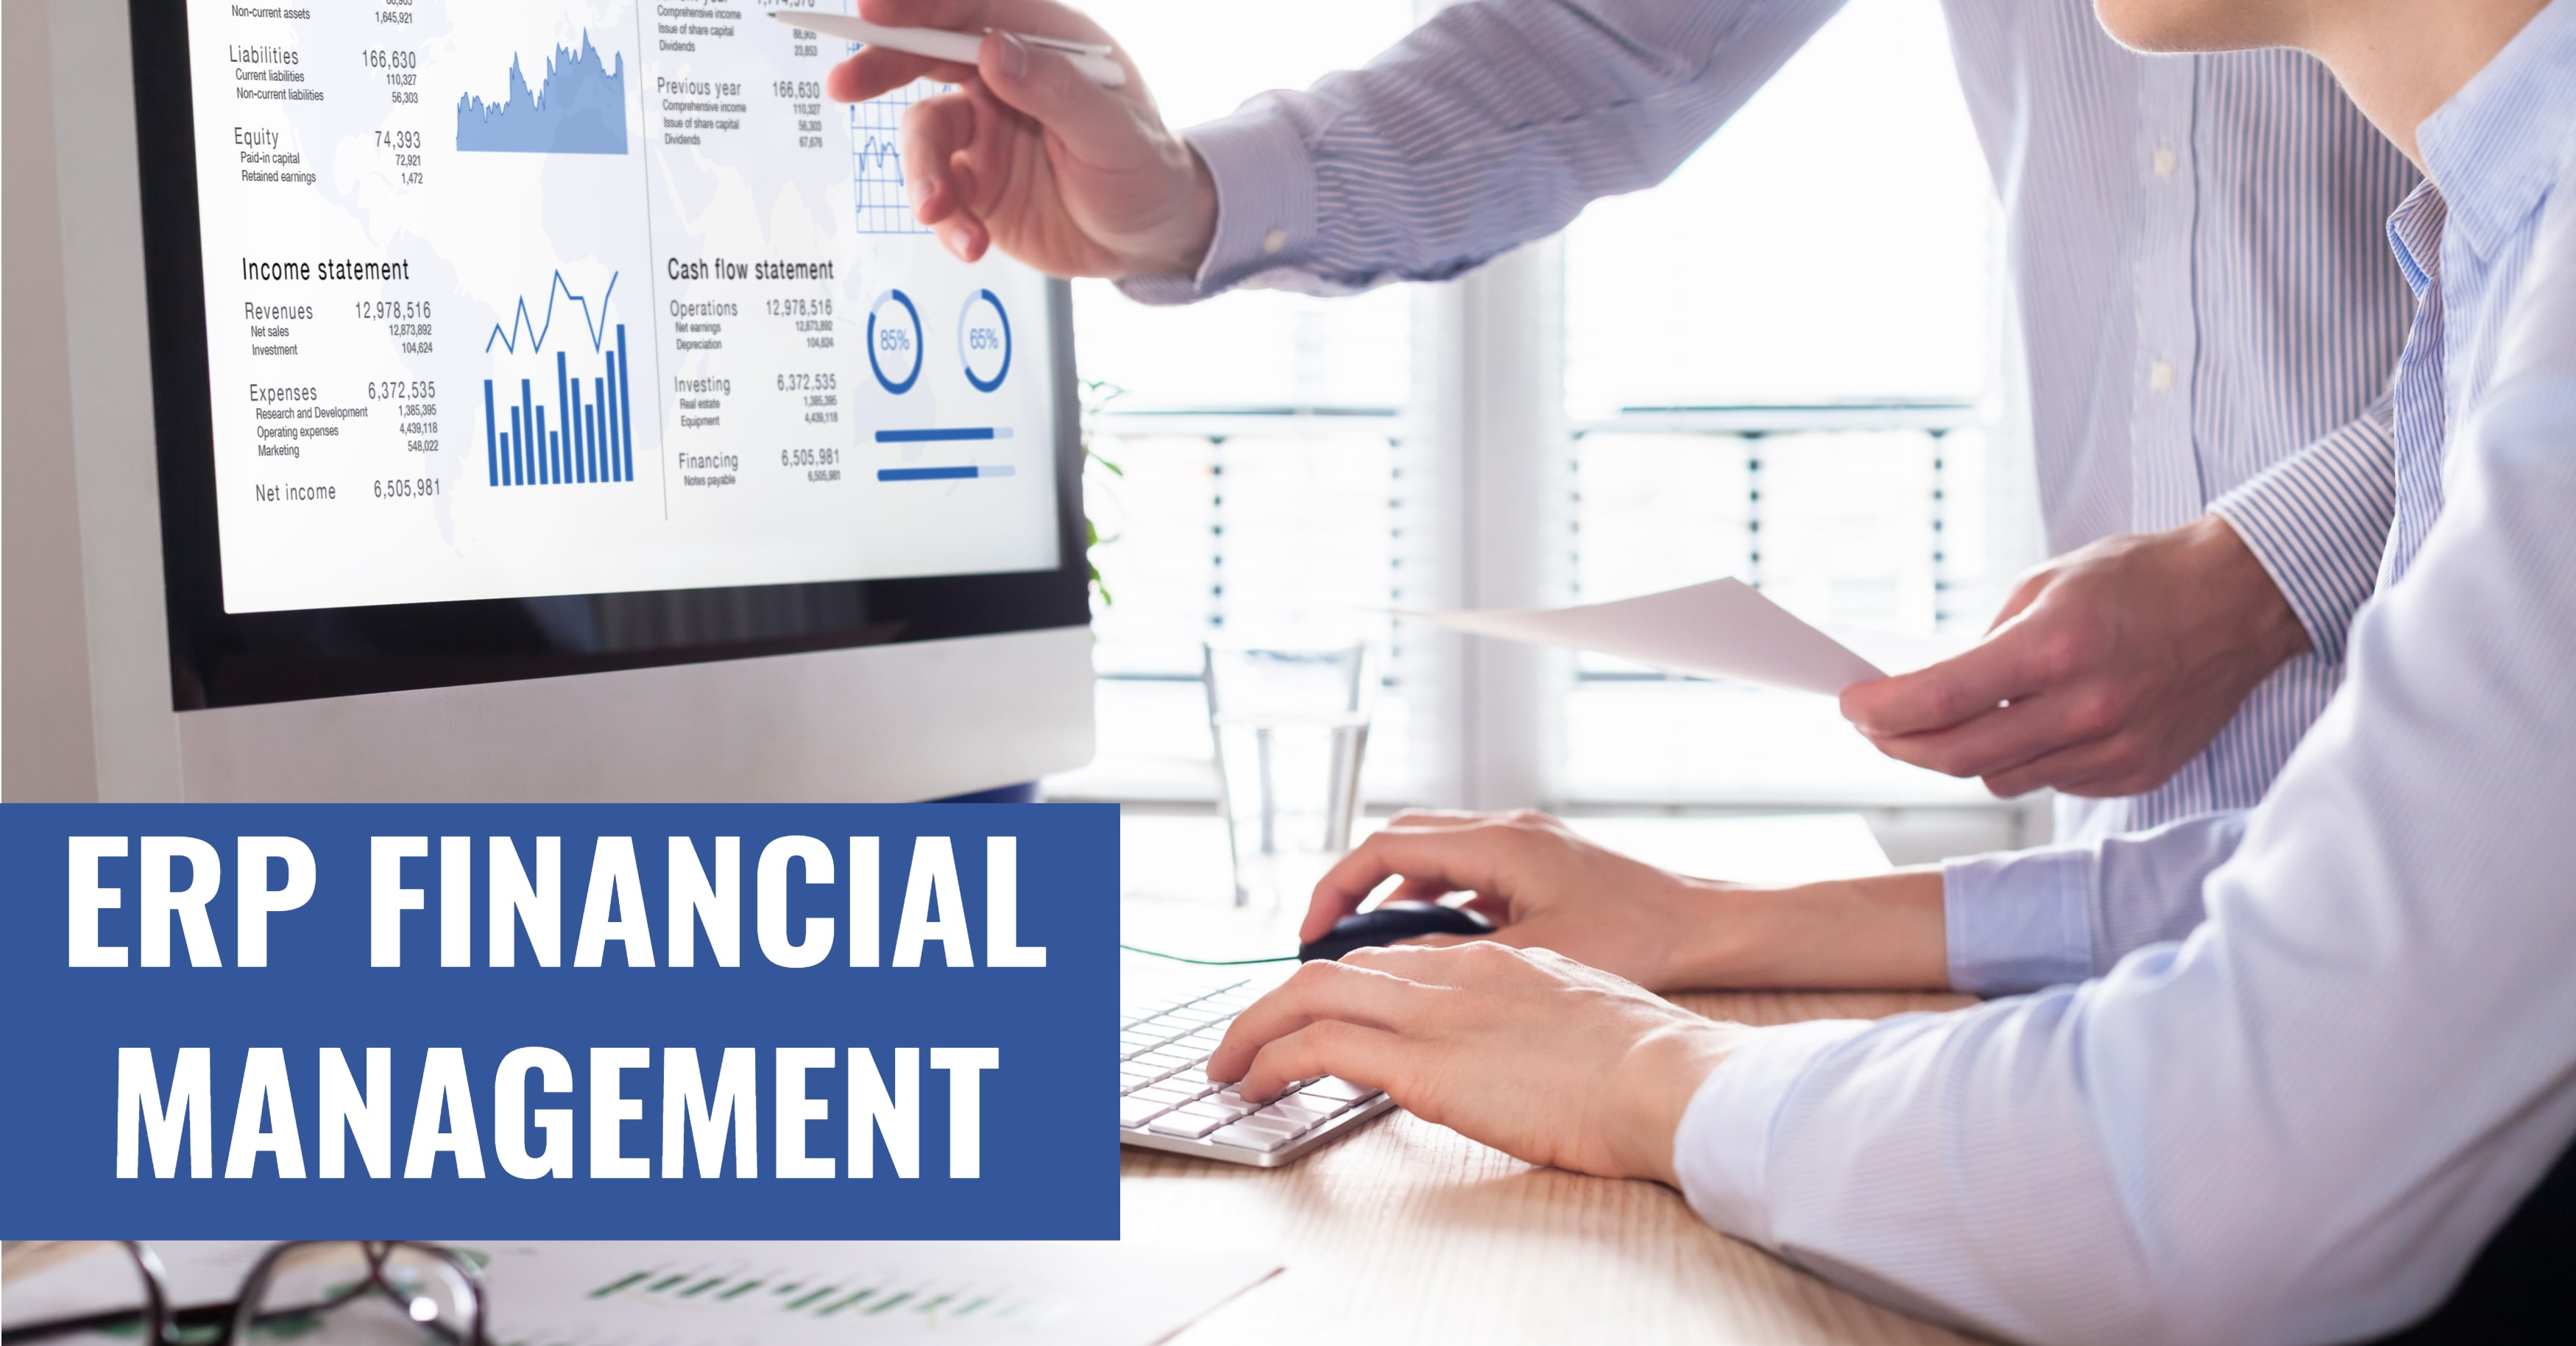 You Can't Afford to Go Without ERP Financial Management